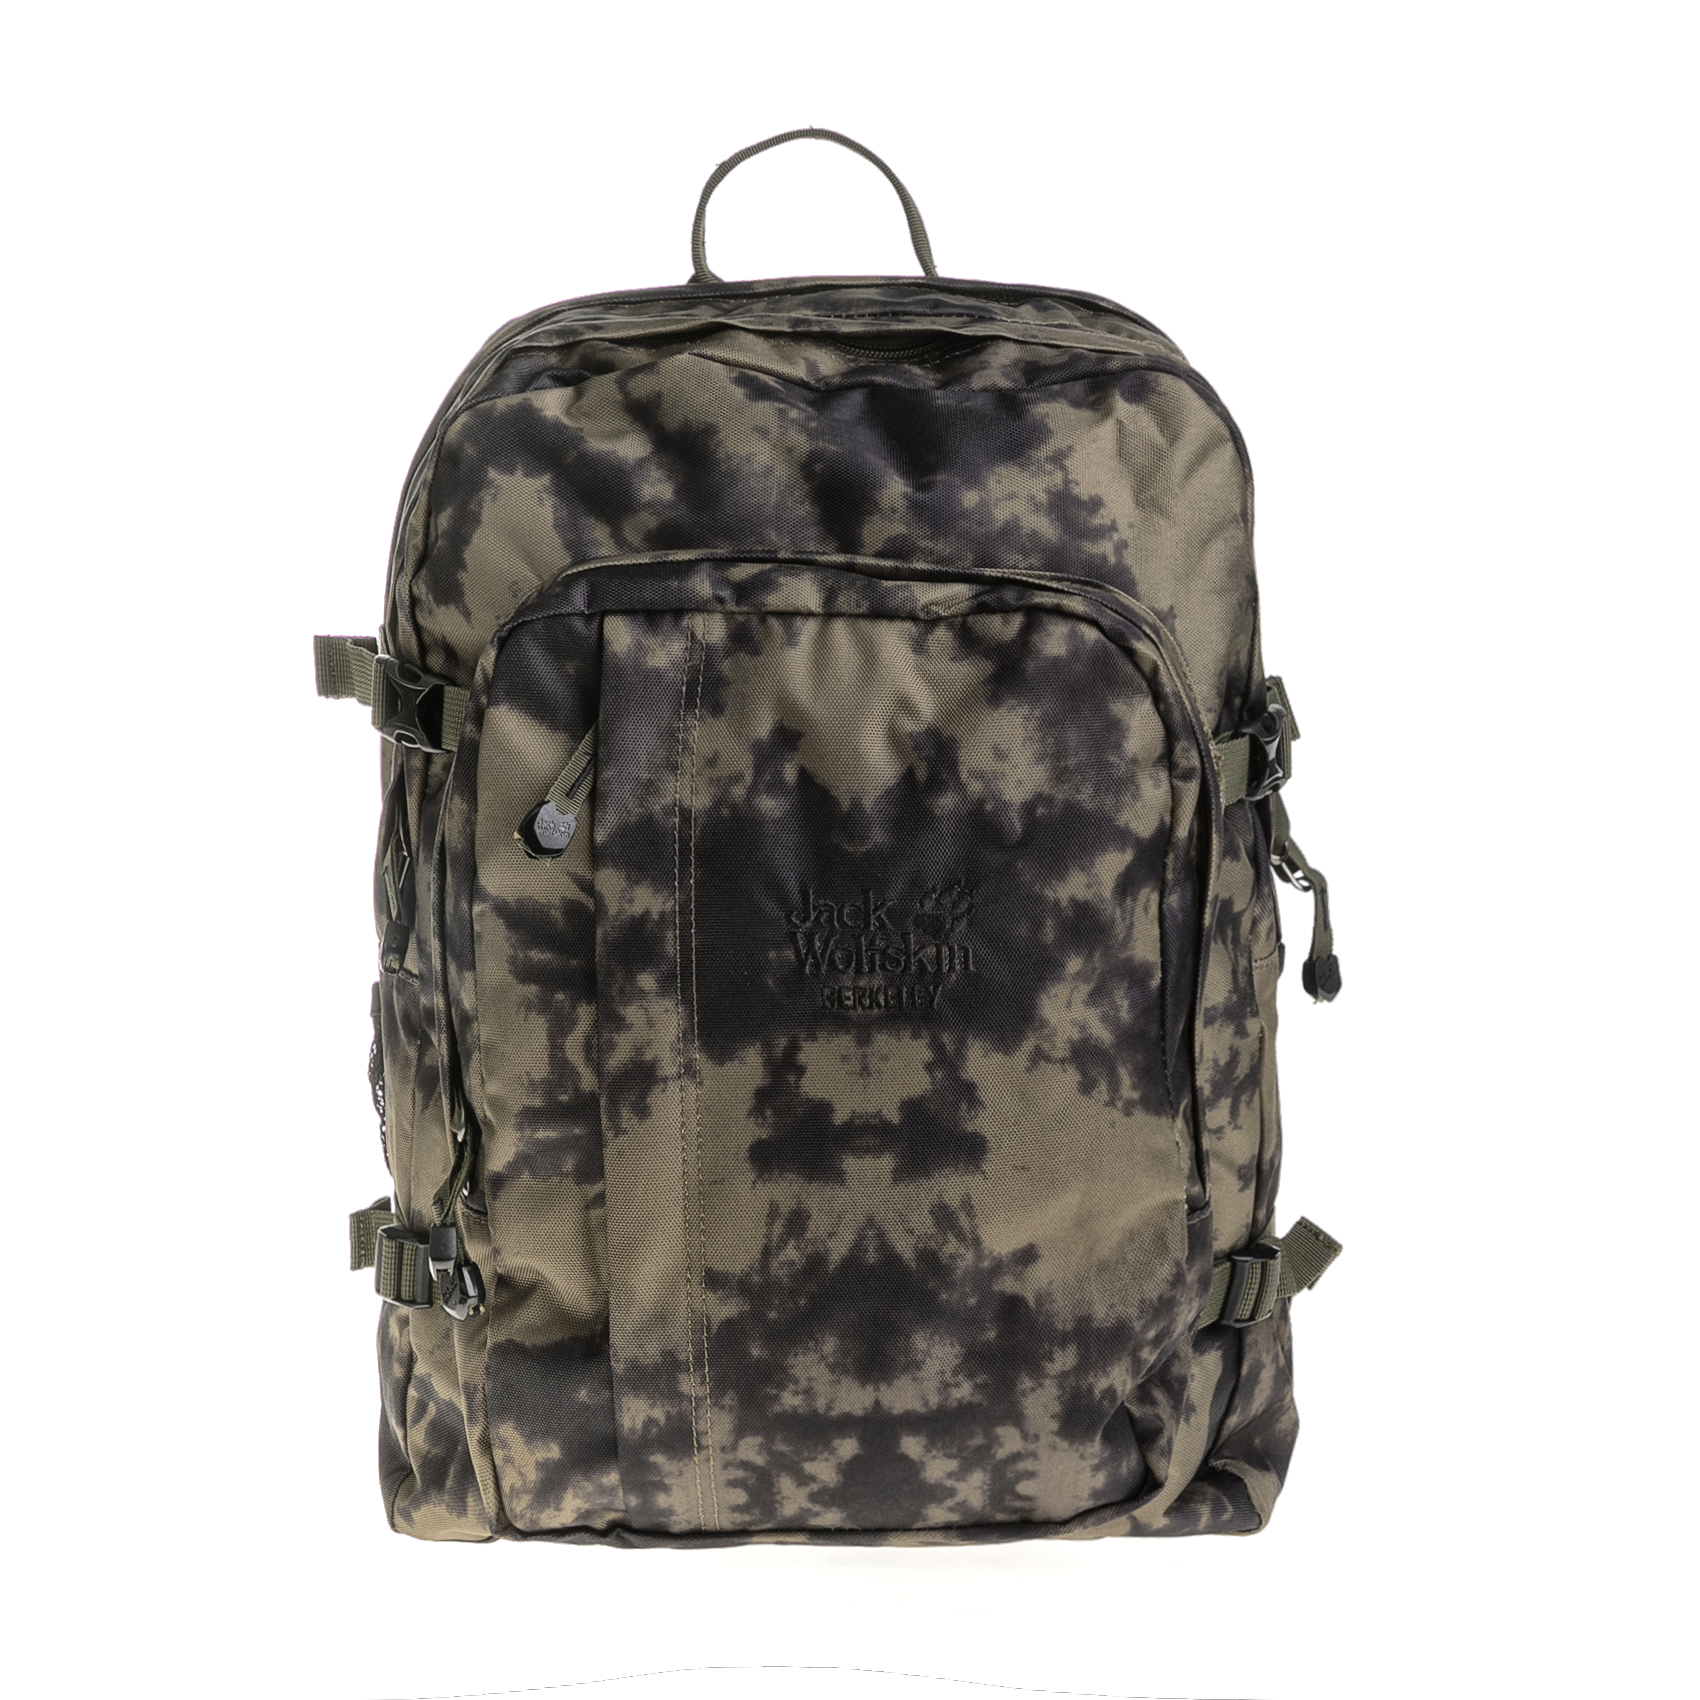 JACK WOLFSKIN – Σακίδιο πλάτης BERKELEY DAYPACK EQUIPMENT JACK WOLFSKIN χακί-μαύρο 1635932.0-6800